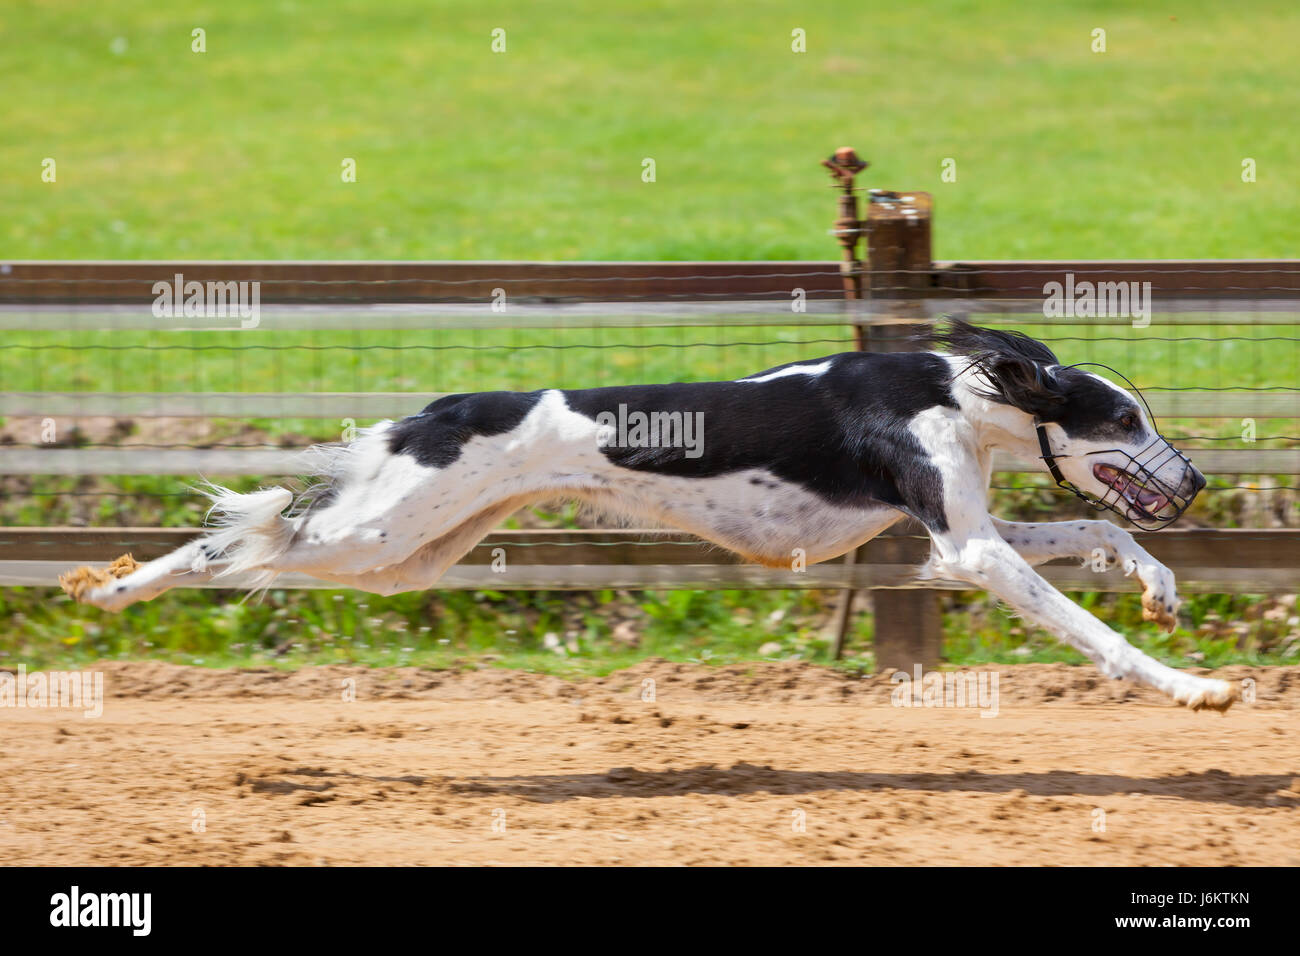 Saluki Stock Photos & Saluki Stock Images - Alamy